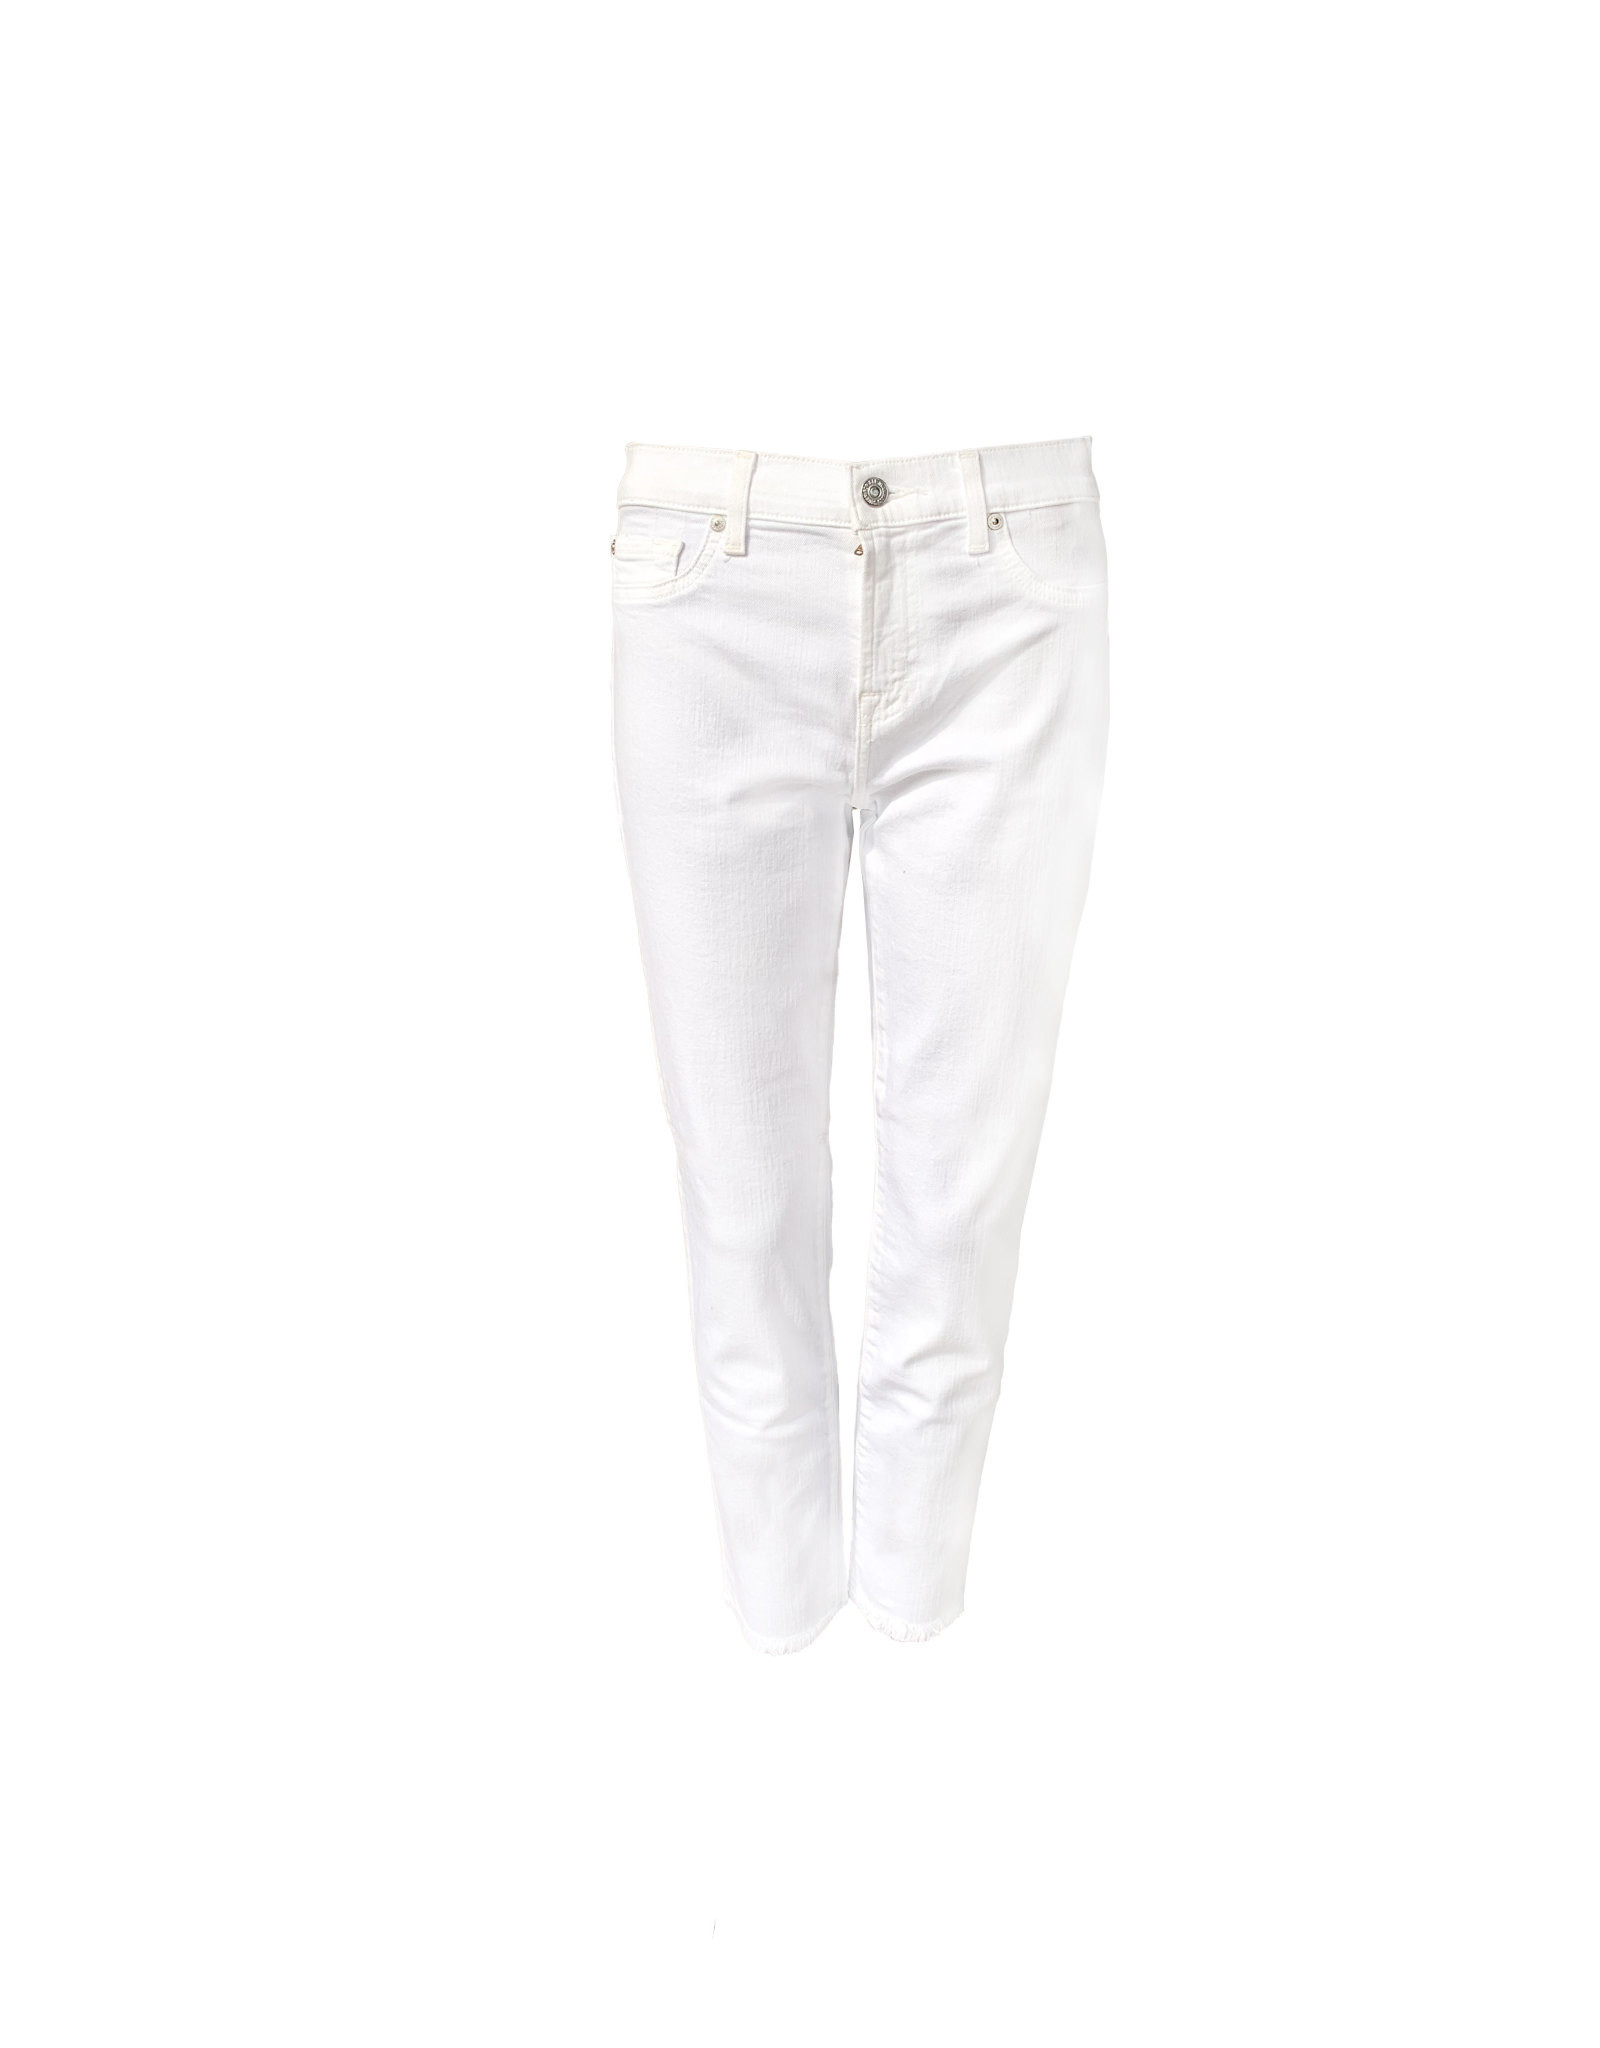 7 For All Mankind 7 For All Mankind Roxanne Ankle Jeans